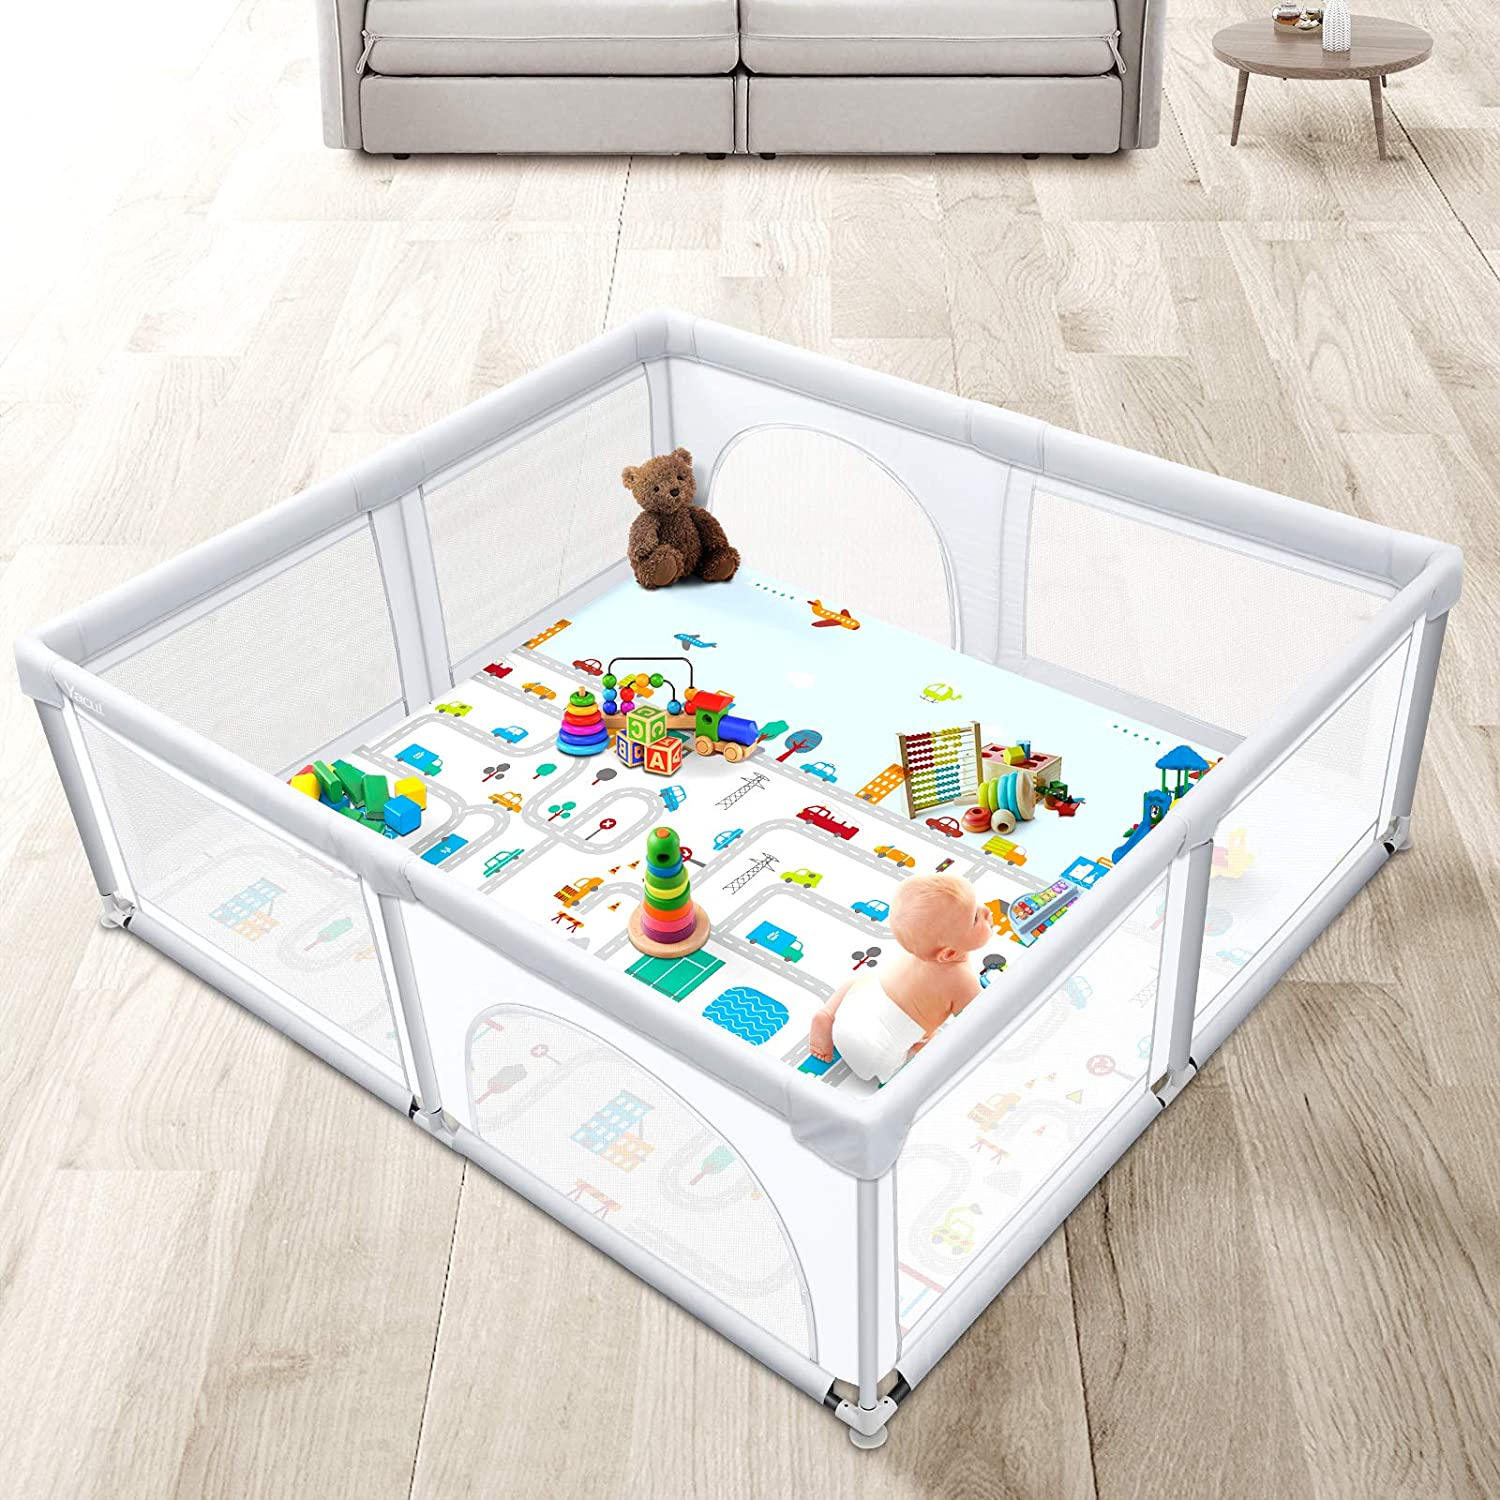 Yacul Extra Size Baby Playpen with Play Mat, 78.7x70.8in, 38.75 sq. Ft Play Area, Light Gray